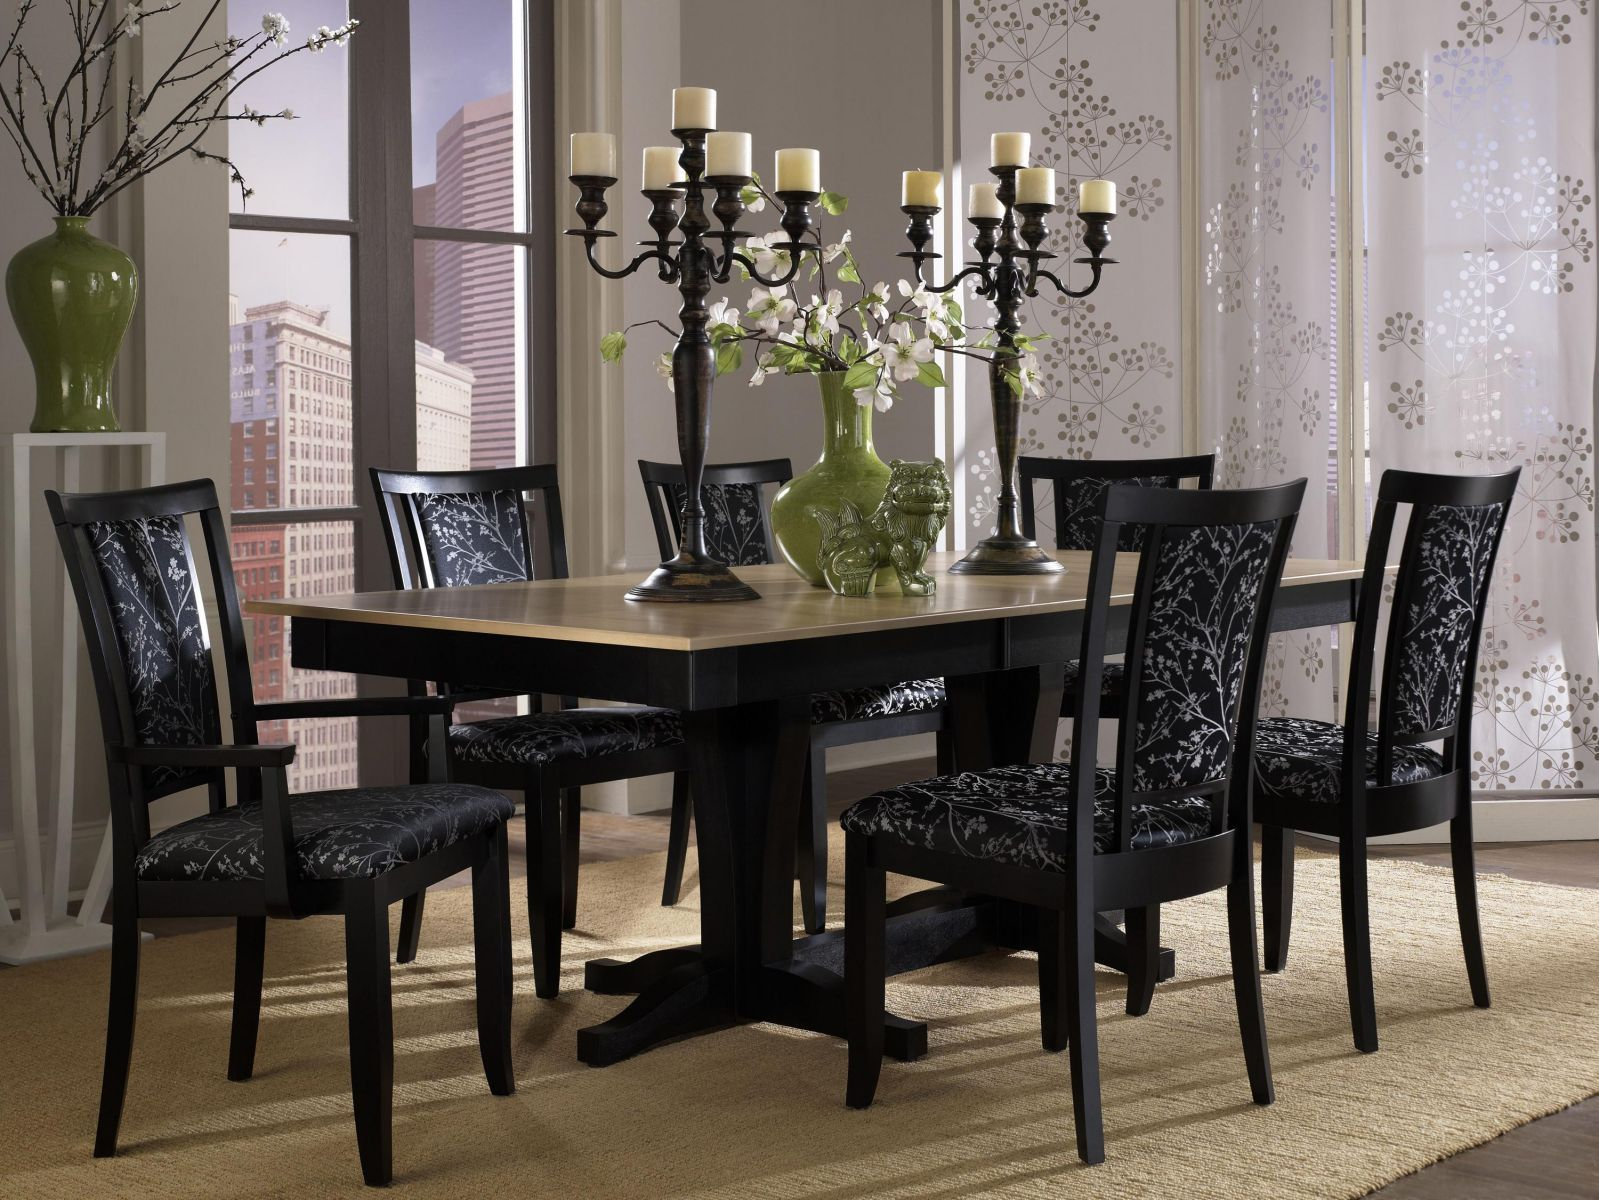 Stylish Dining Room Set Idea With Black Floral Upholstered